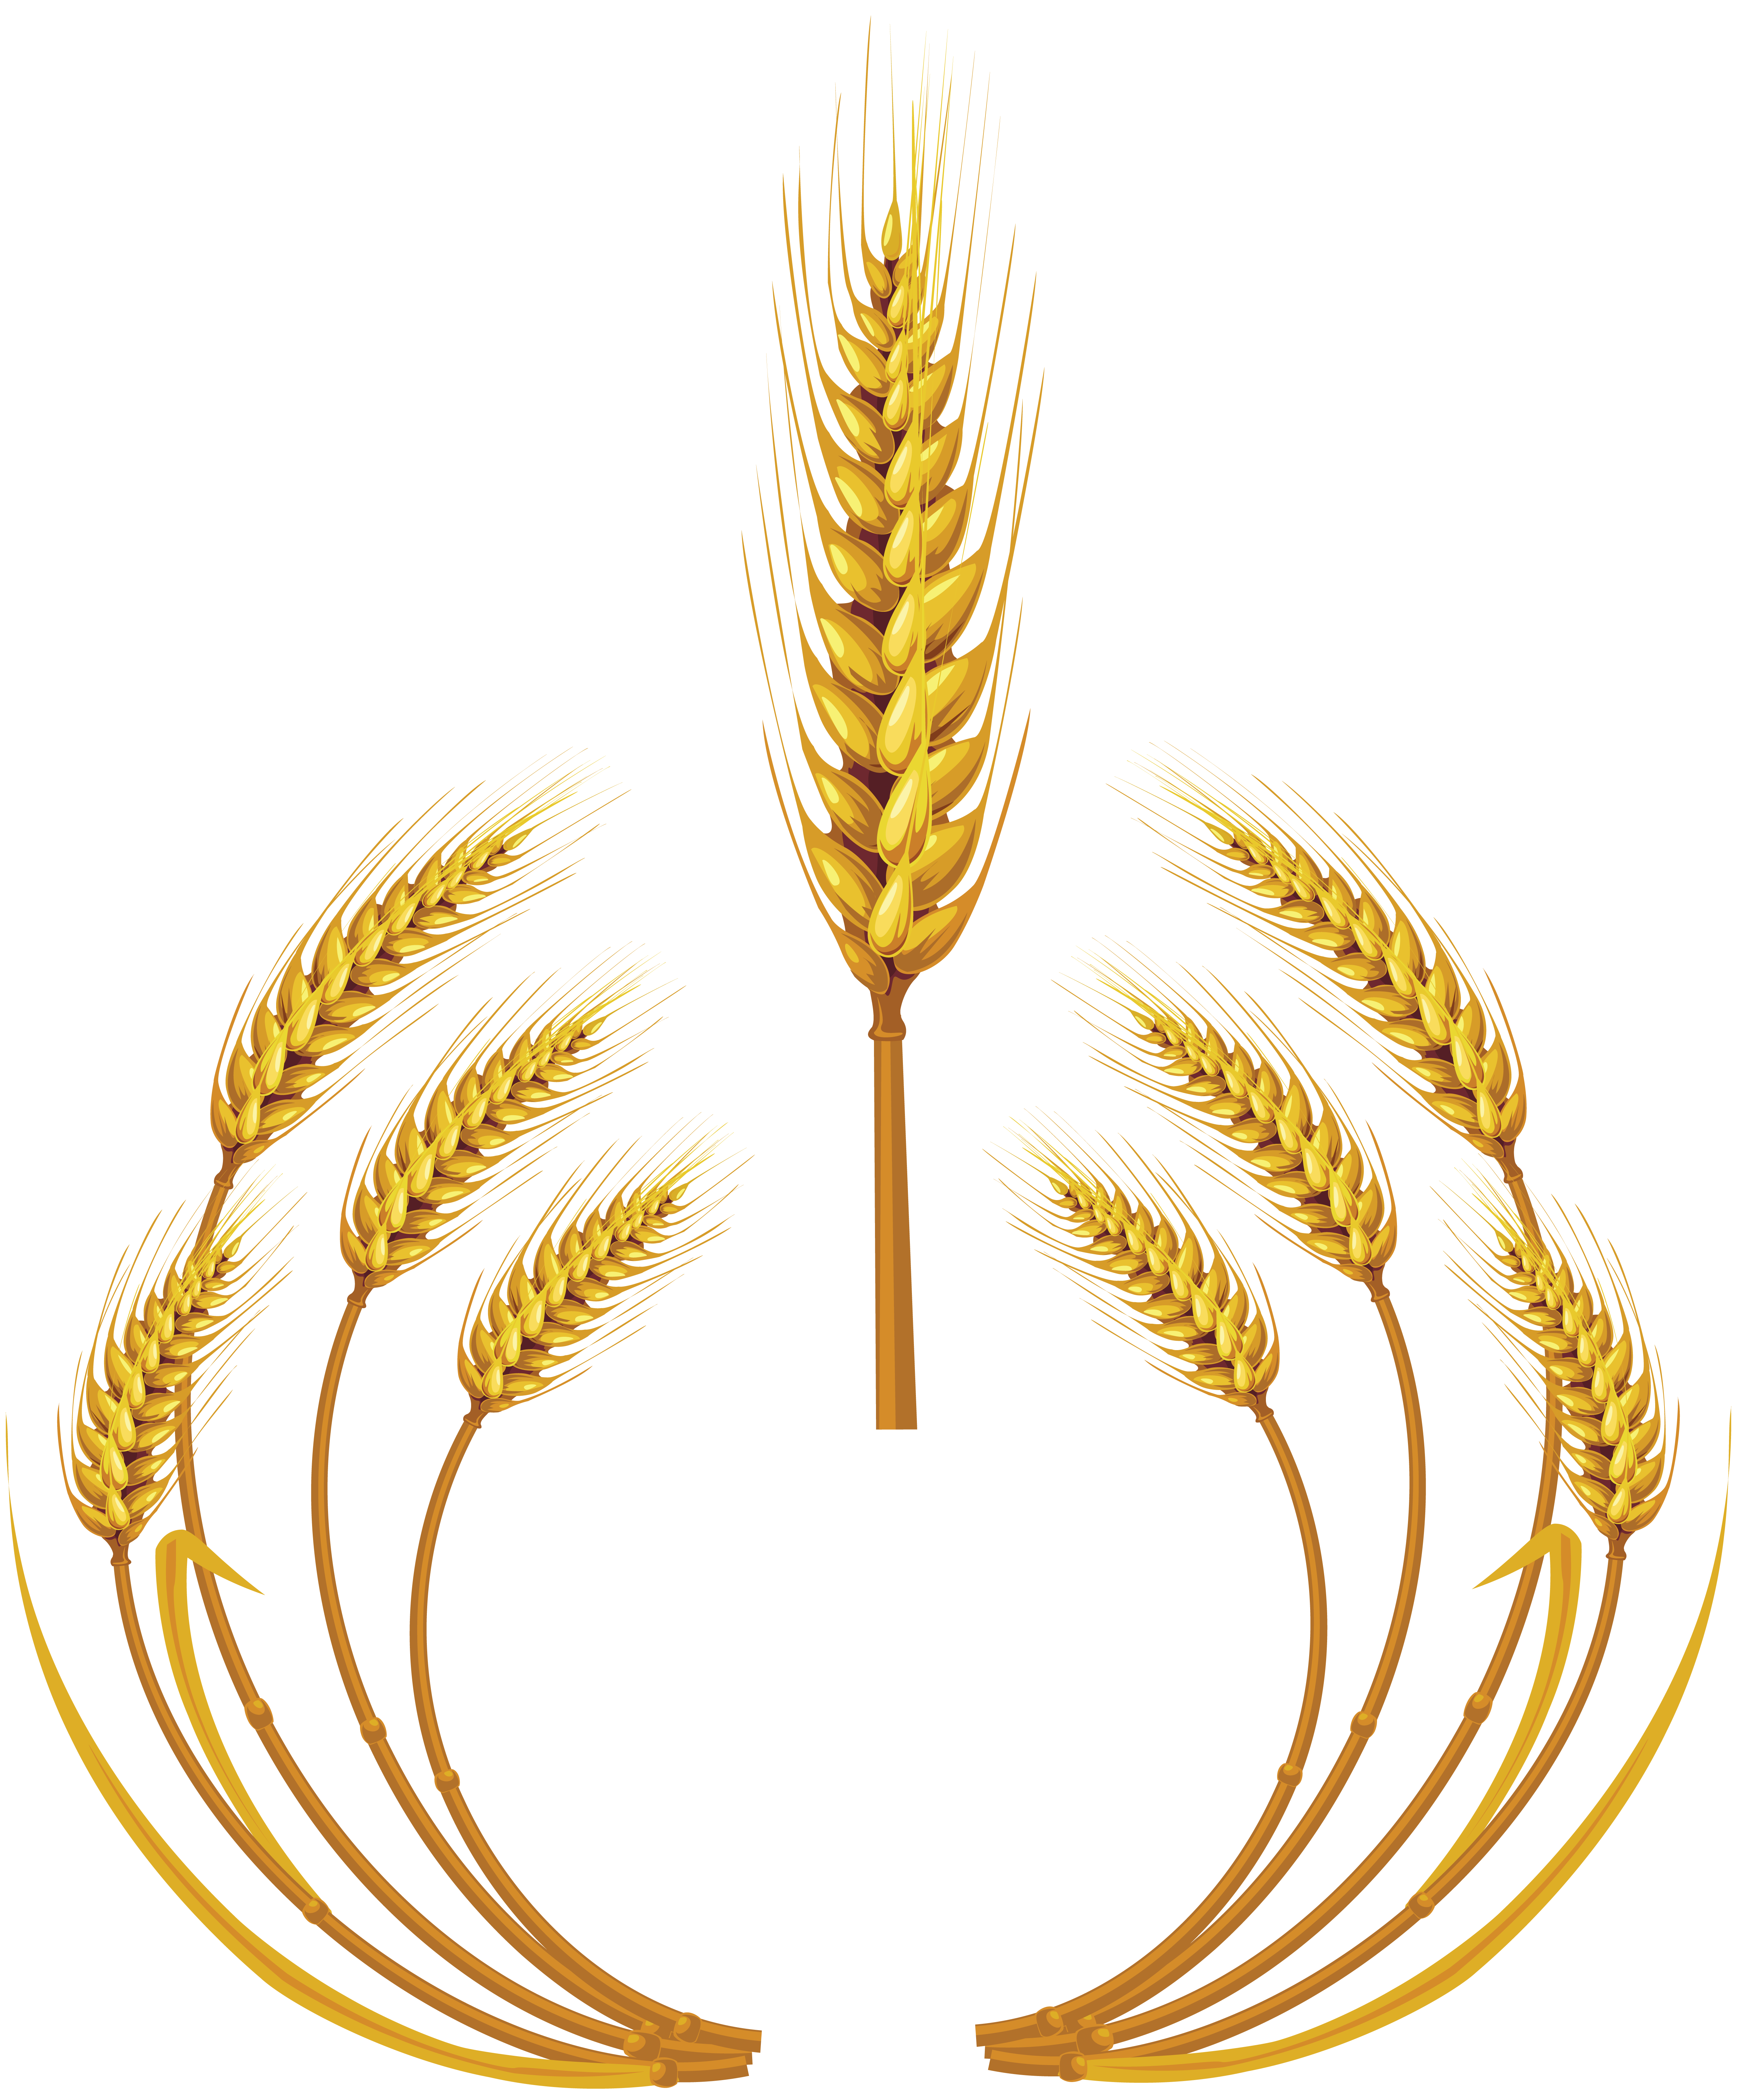 Grains clipart wheat seed. Png image purepng free